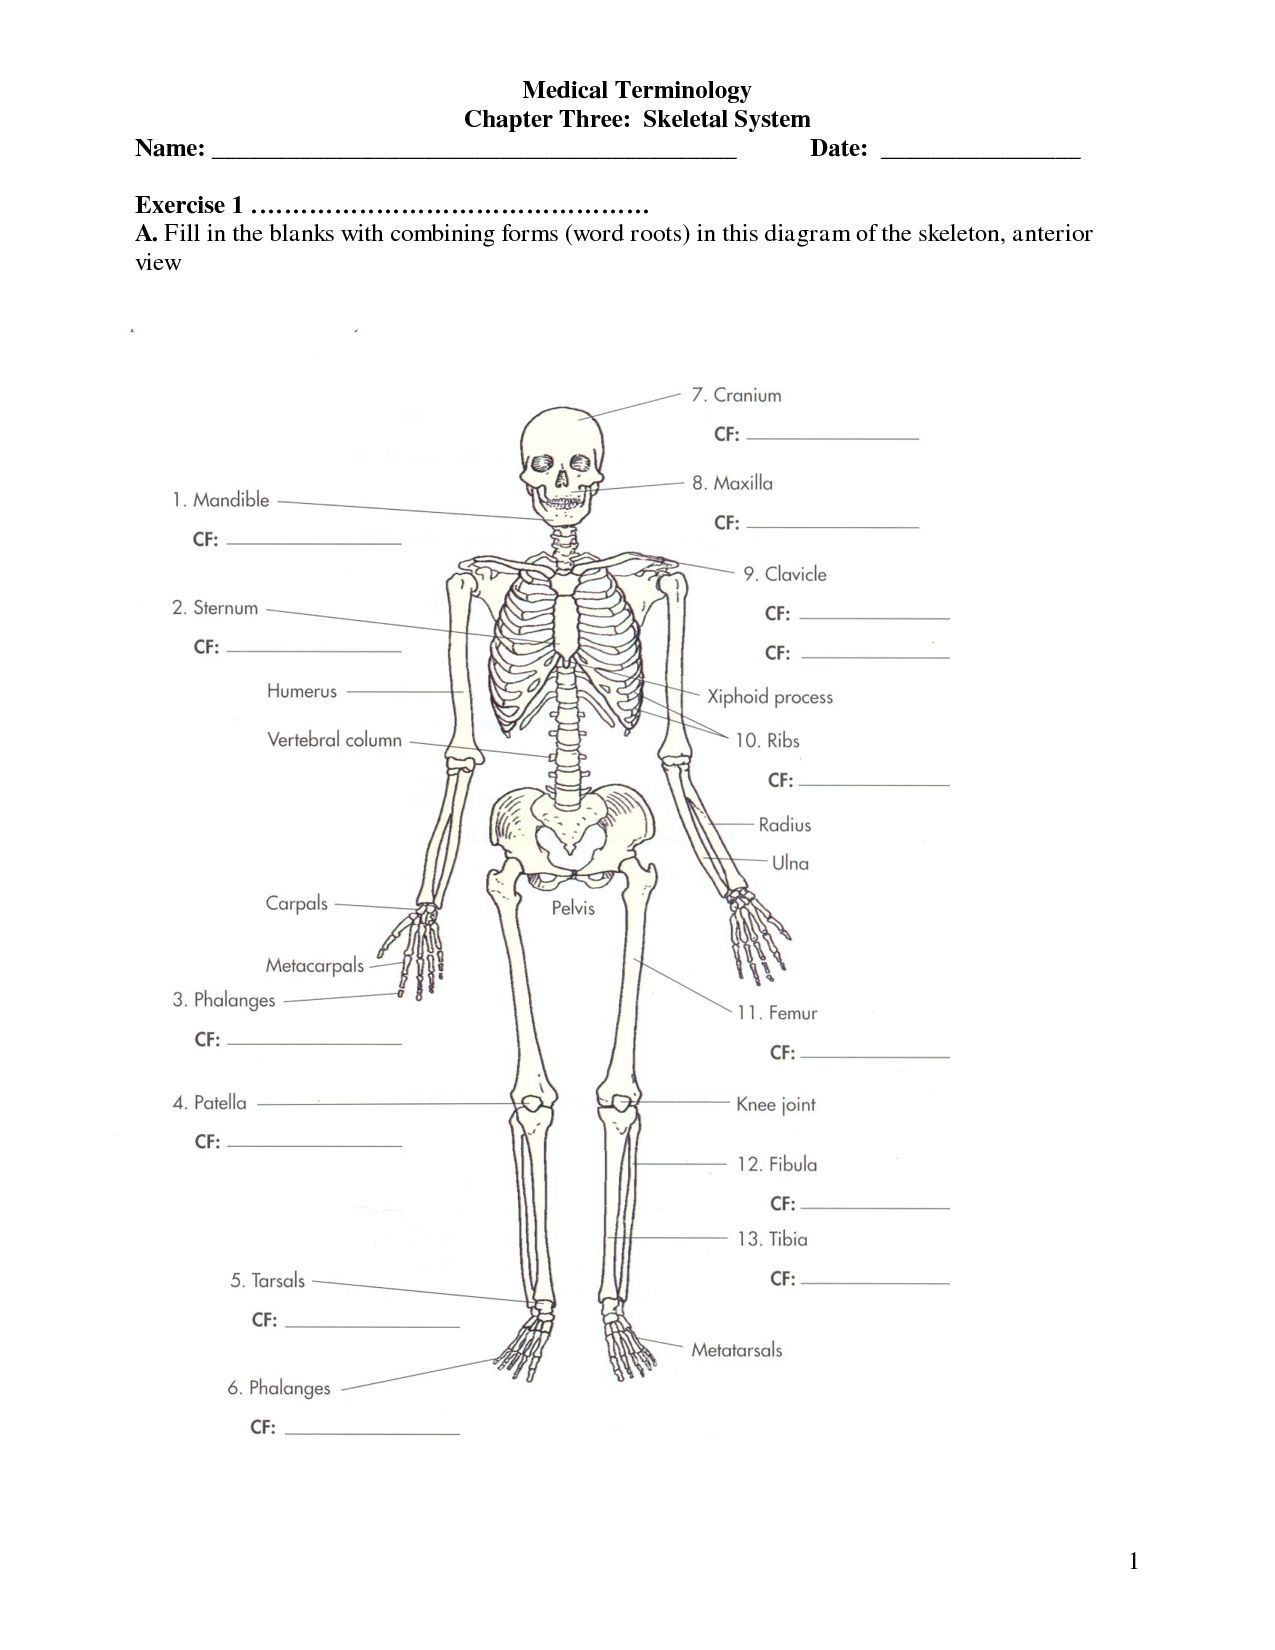 tibia and fibula blank diagram onan transfer switch tarsals unlabeled schematic of the human skeleton anatomy drawing hand